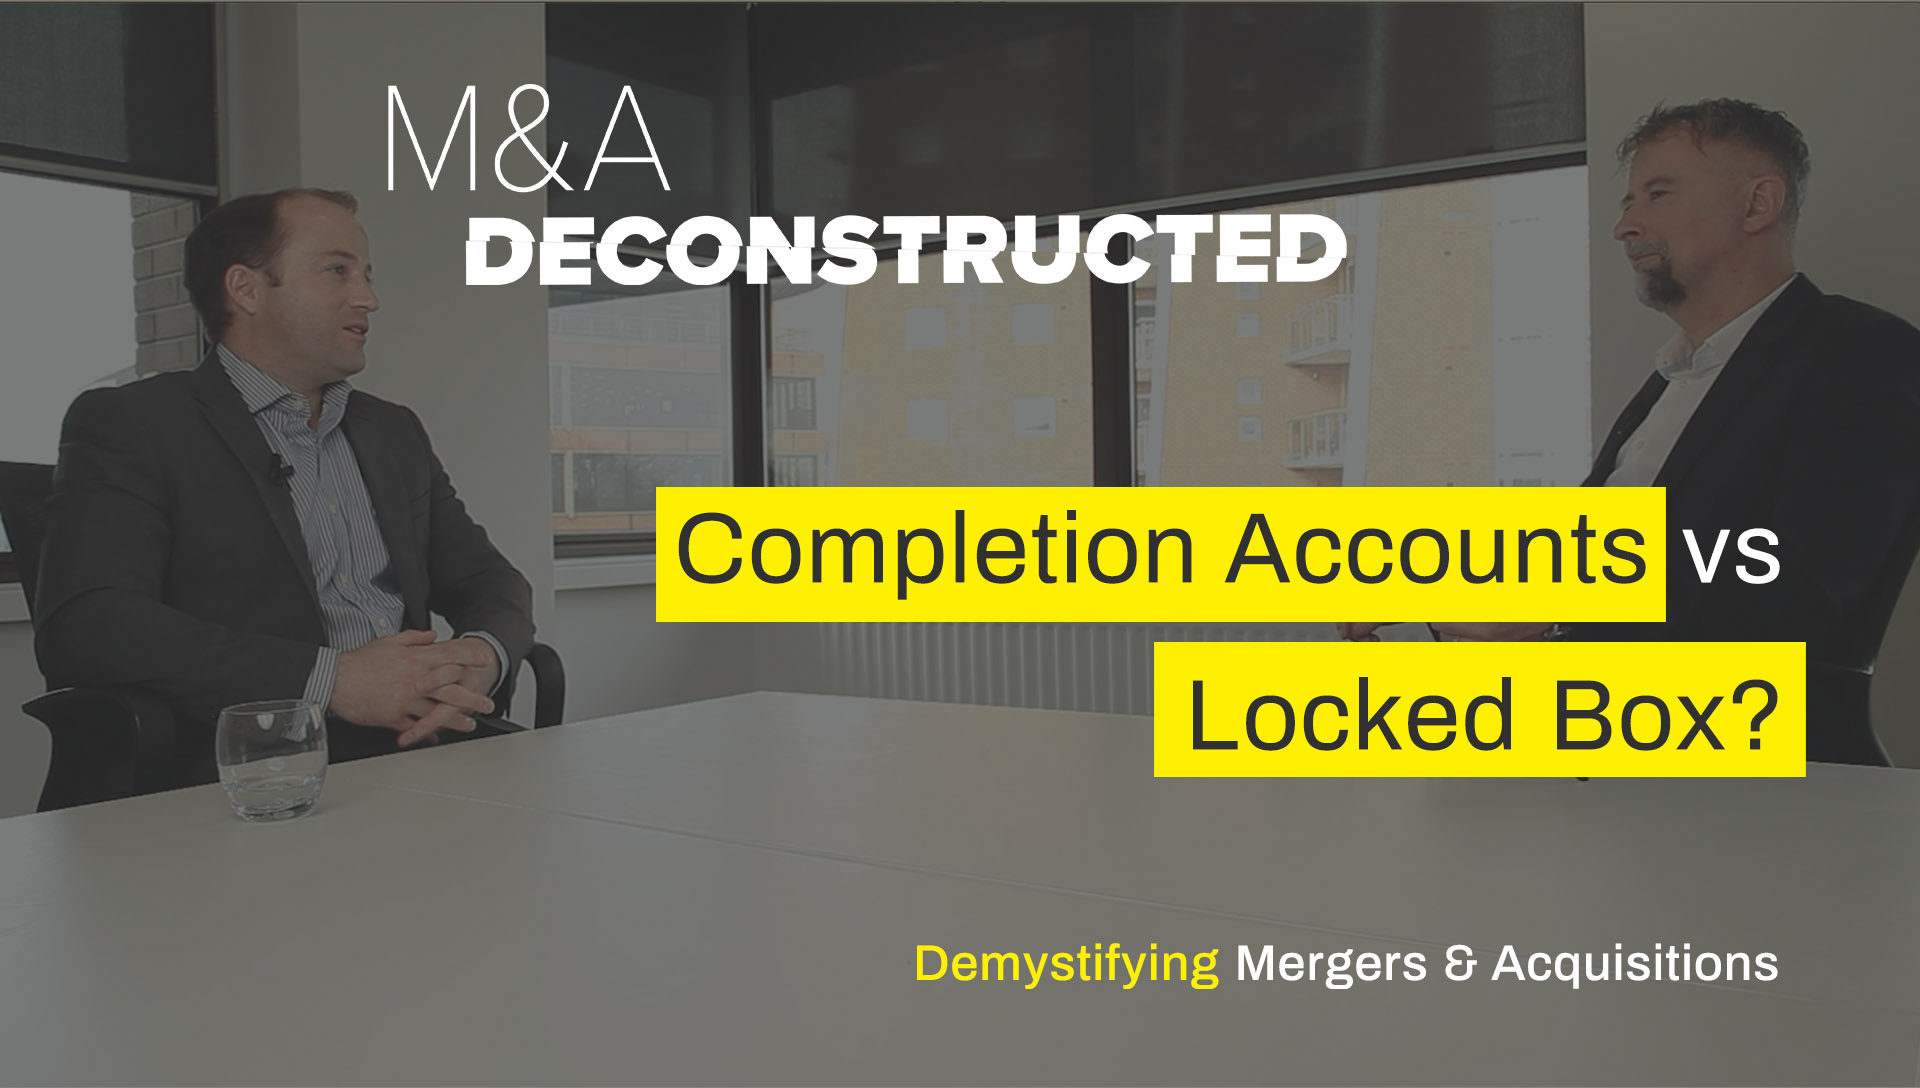 M&A Deconstructed - Completion Accounts or Locked Box?